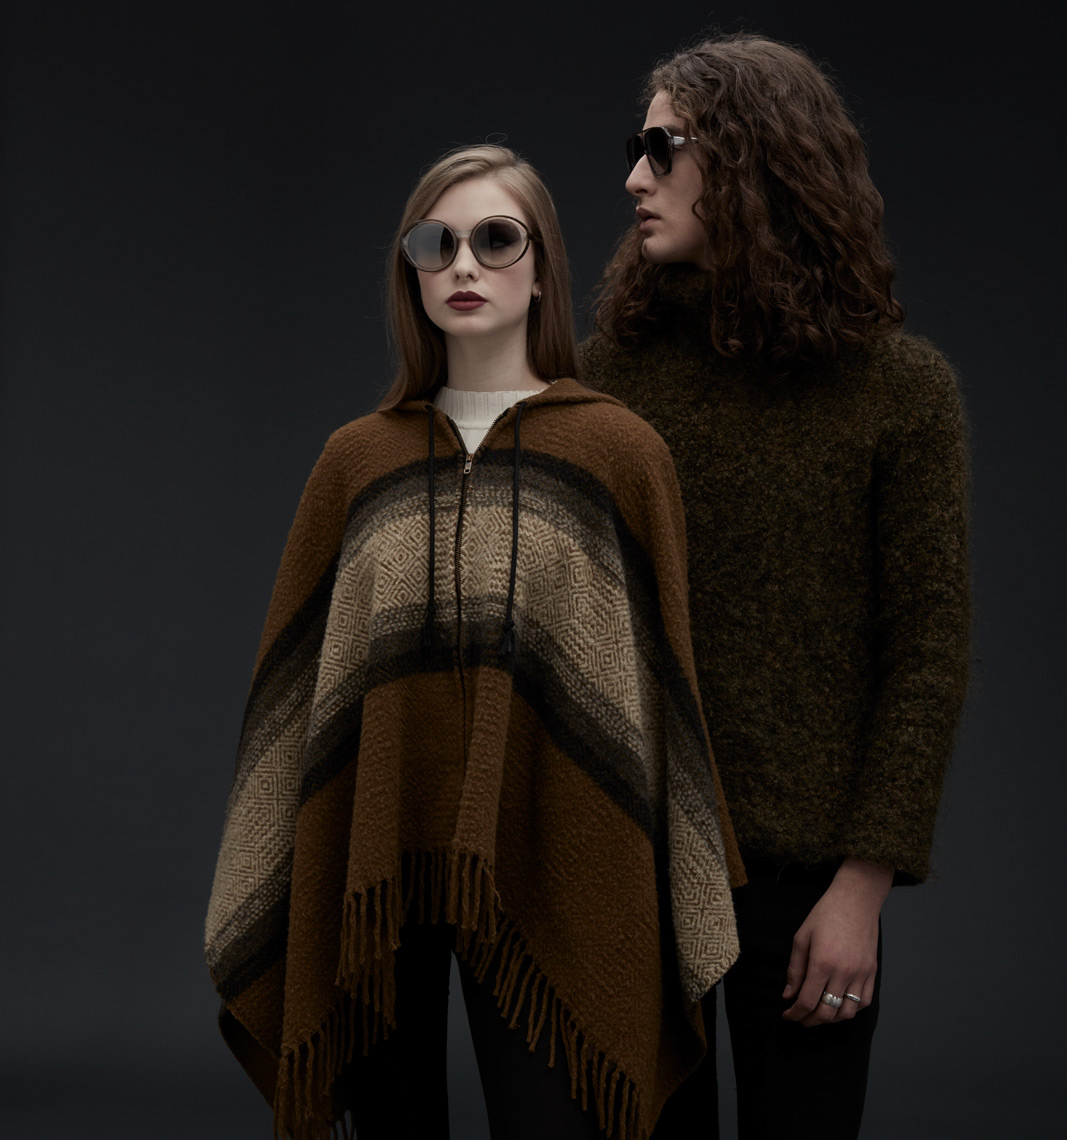 curly haired model wearing wool sweater and glasses looking at straight haired model wearing circular frames